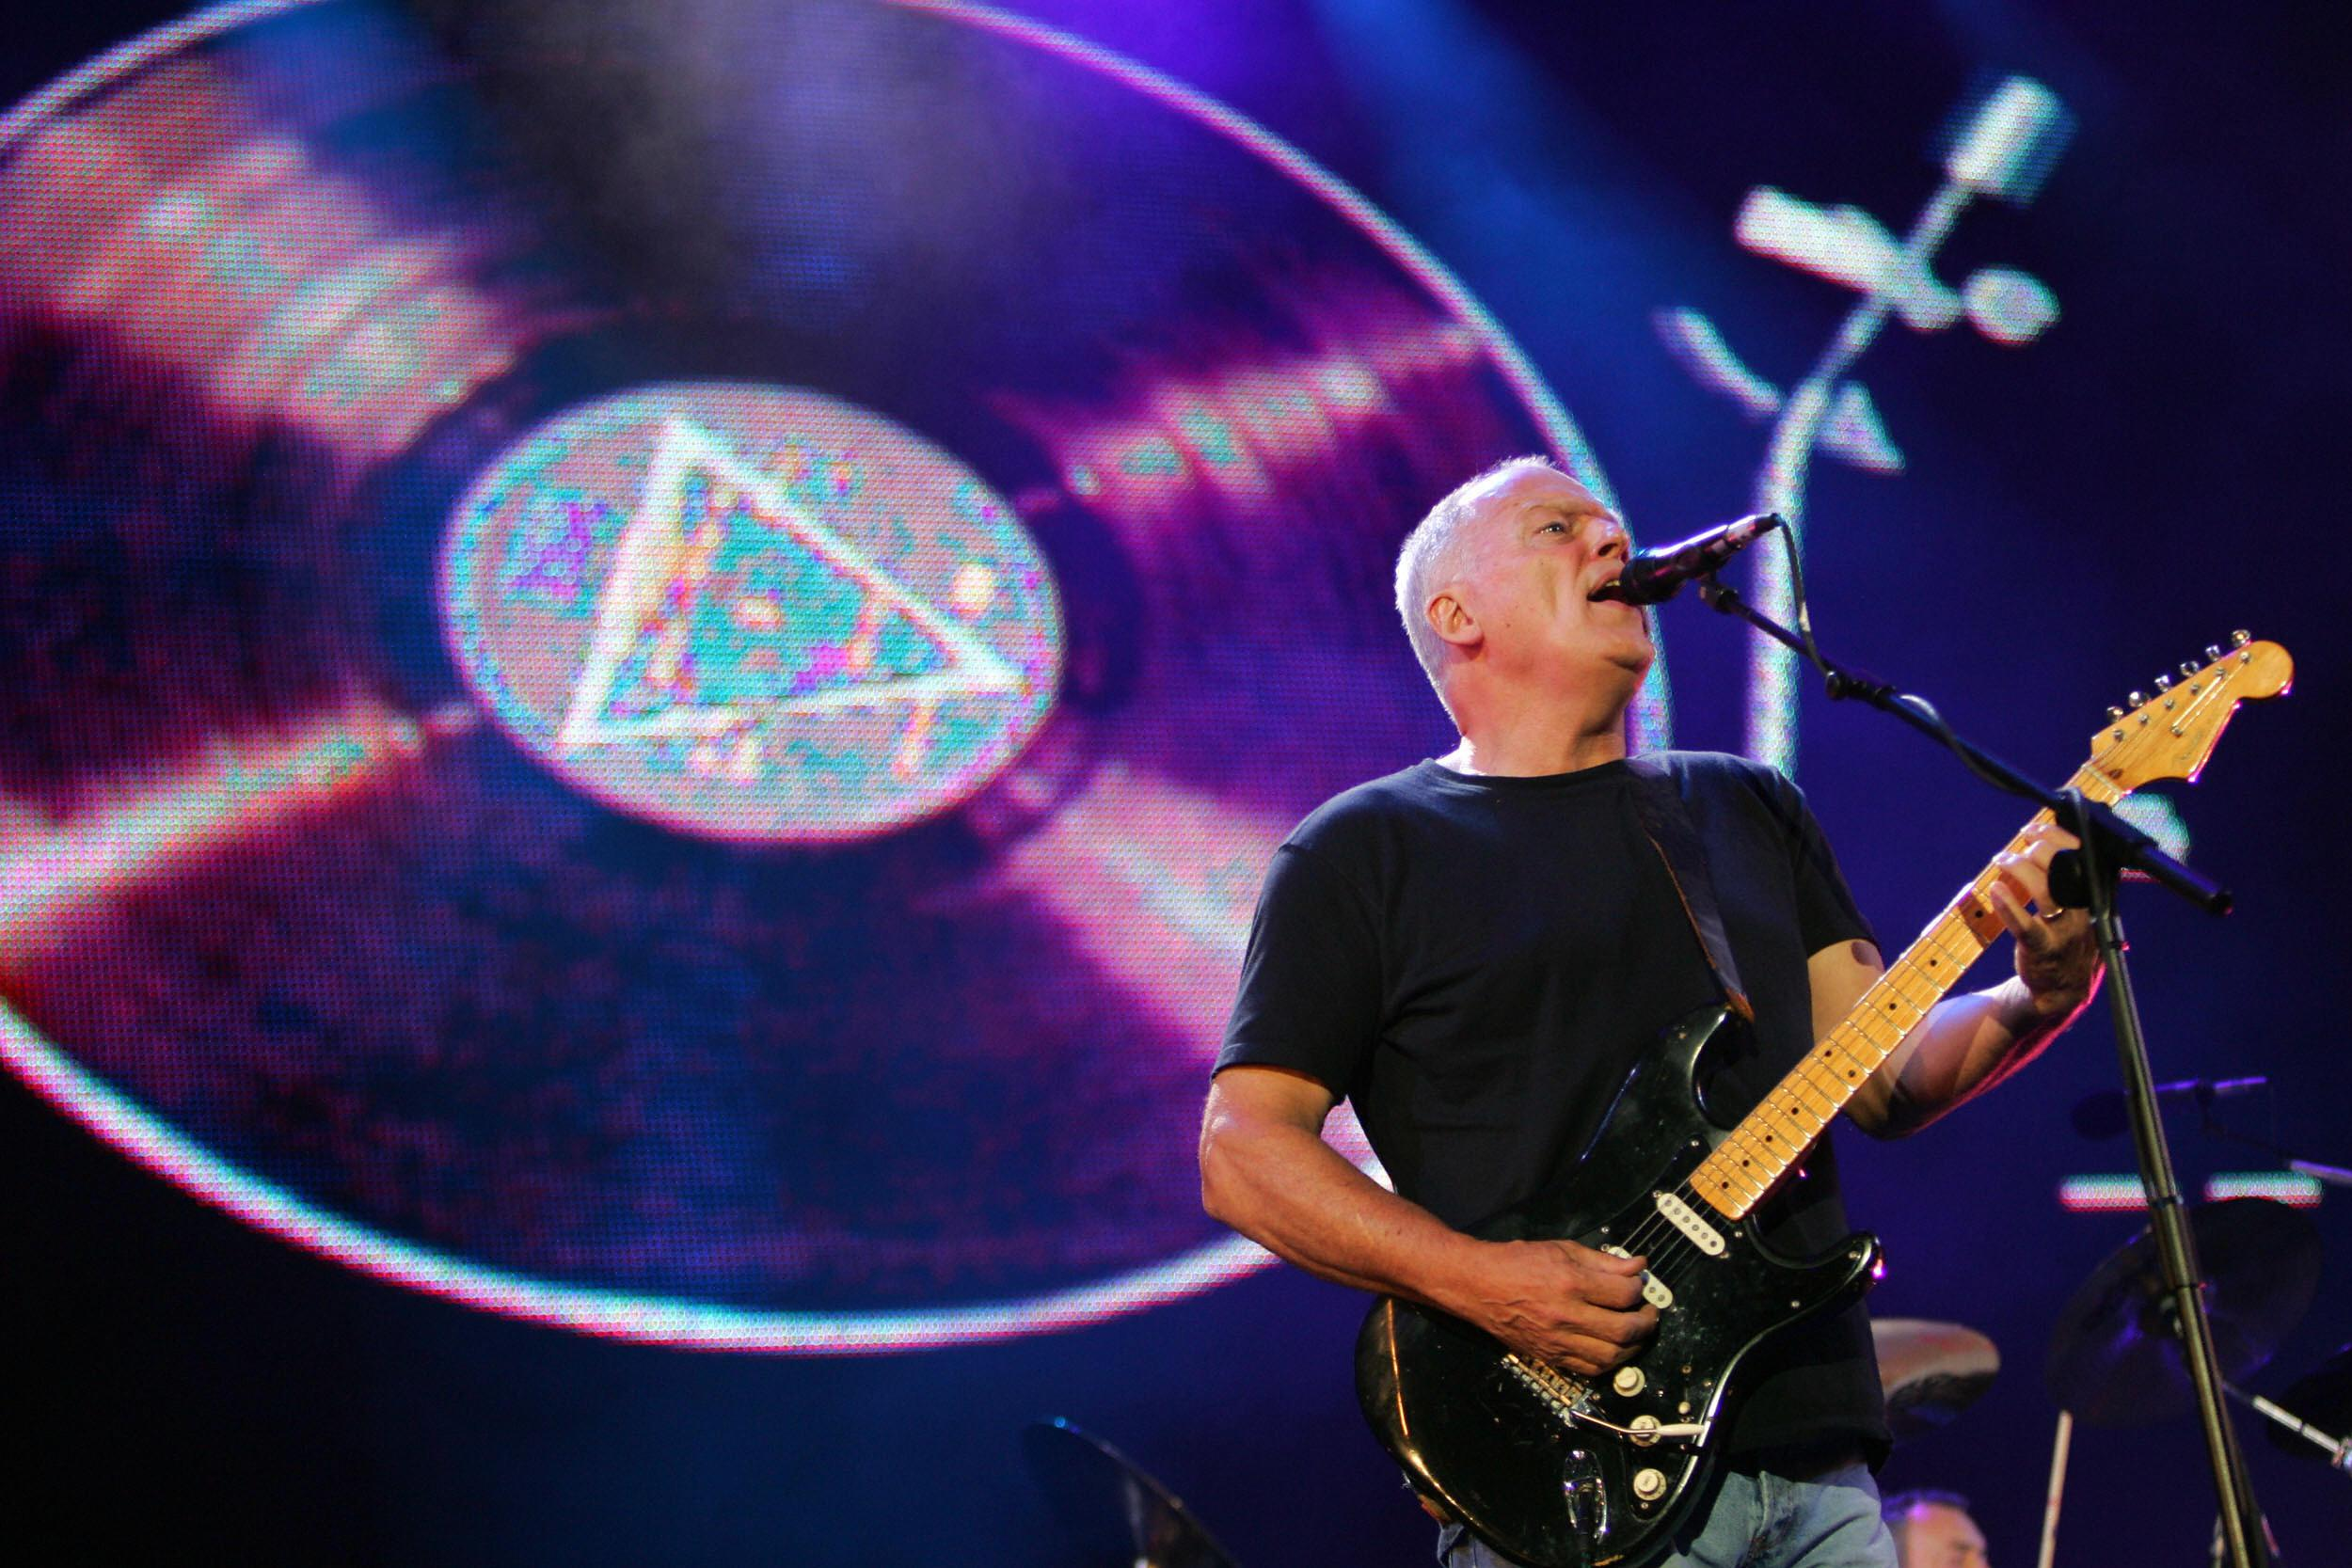 Police department calls out Pink Floyd fans for breaking stay-at-home order: 'Sadly I'm sure we all wish we could be here'